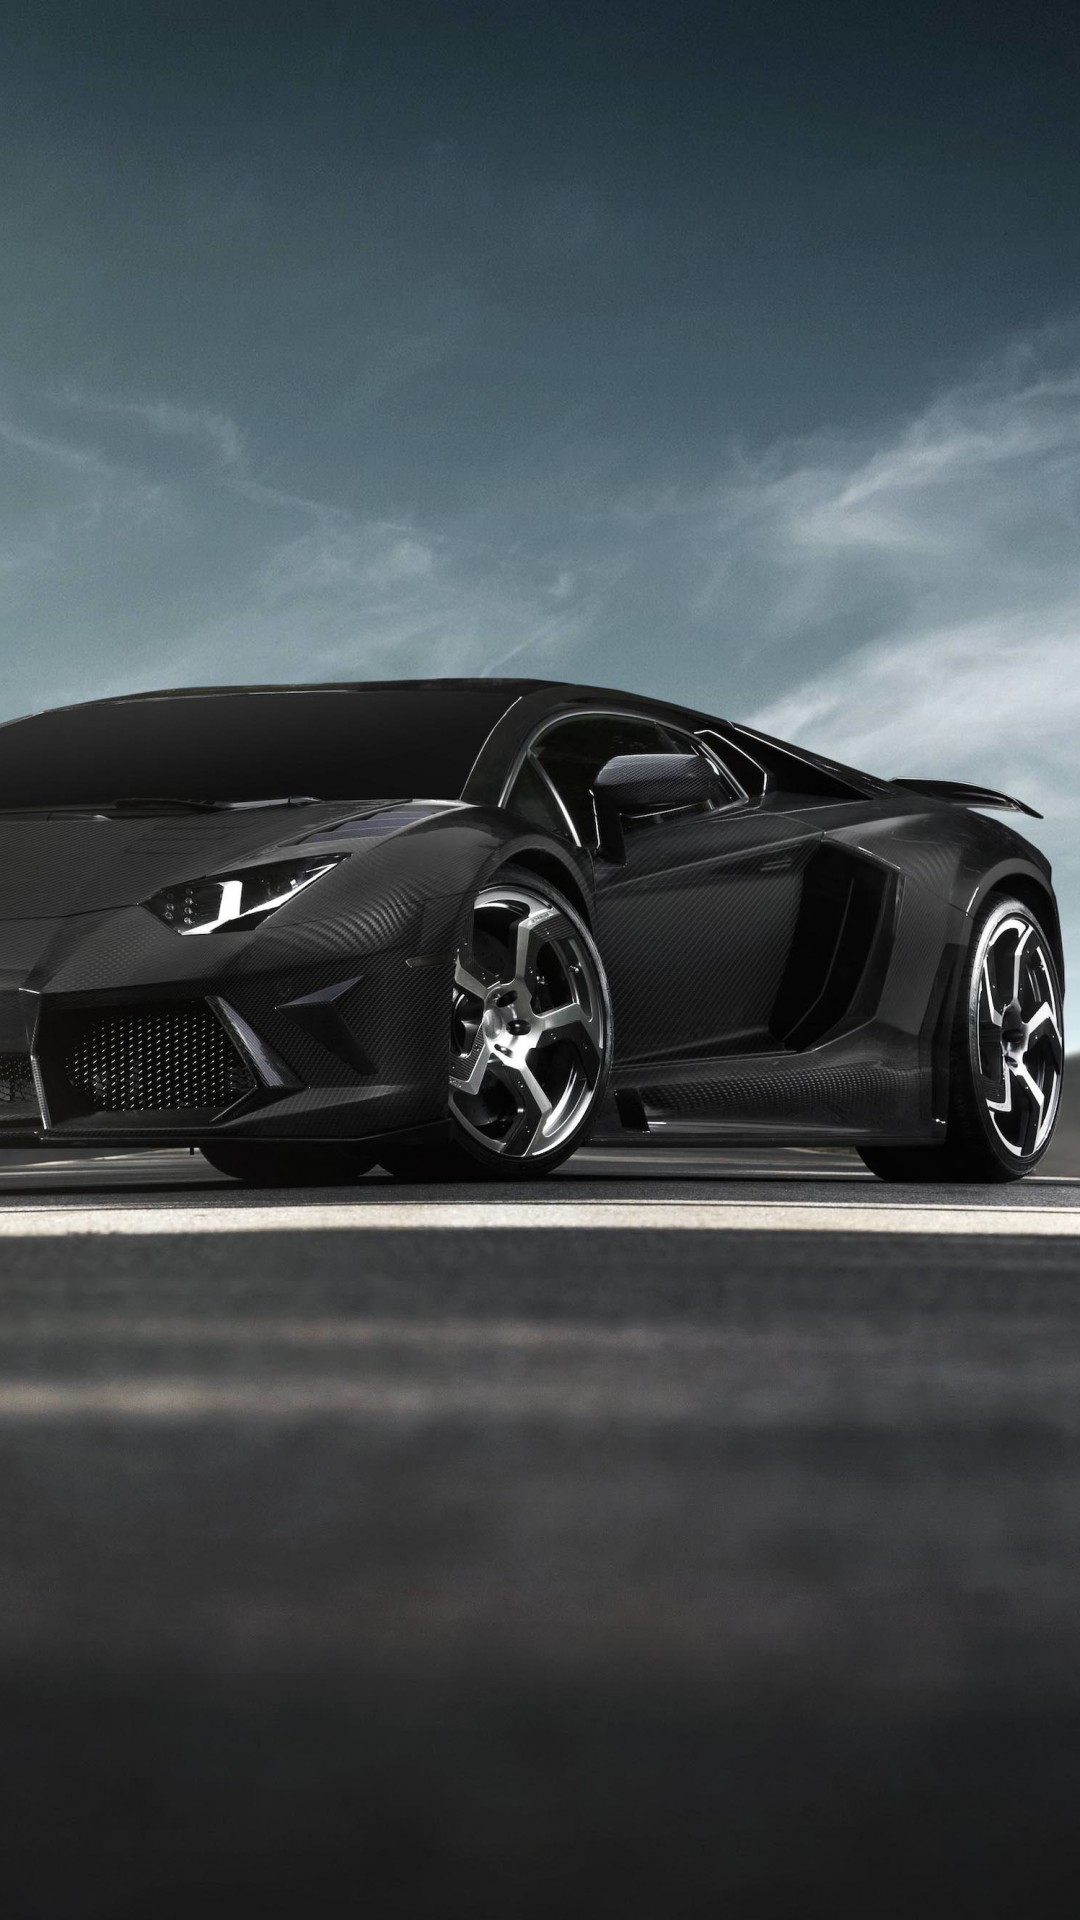 Mansory Carbonado Lamborghini Aventador LP700-4 Wallpaper for HTC One